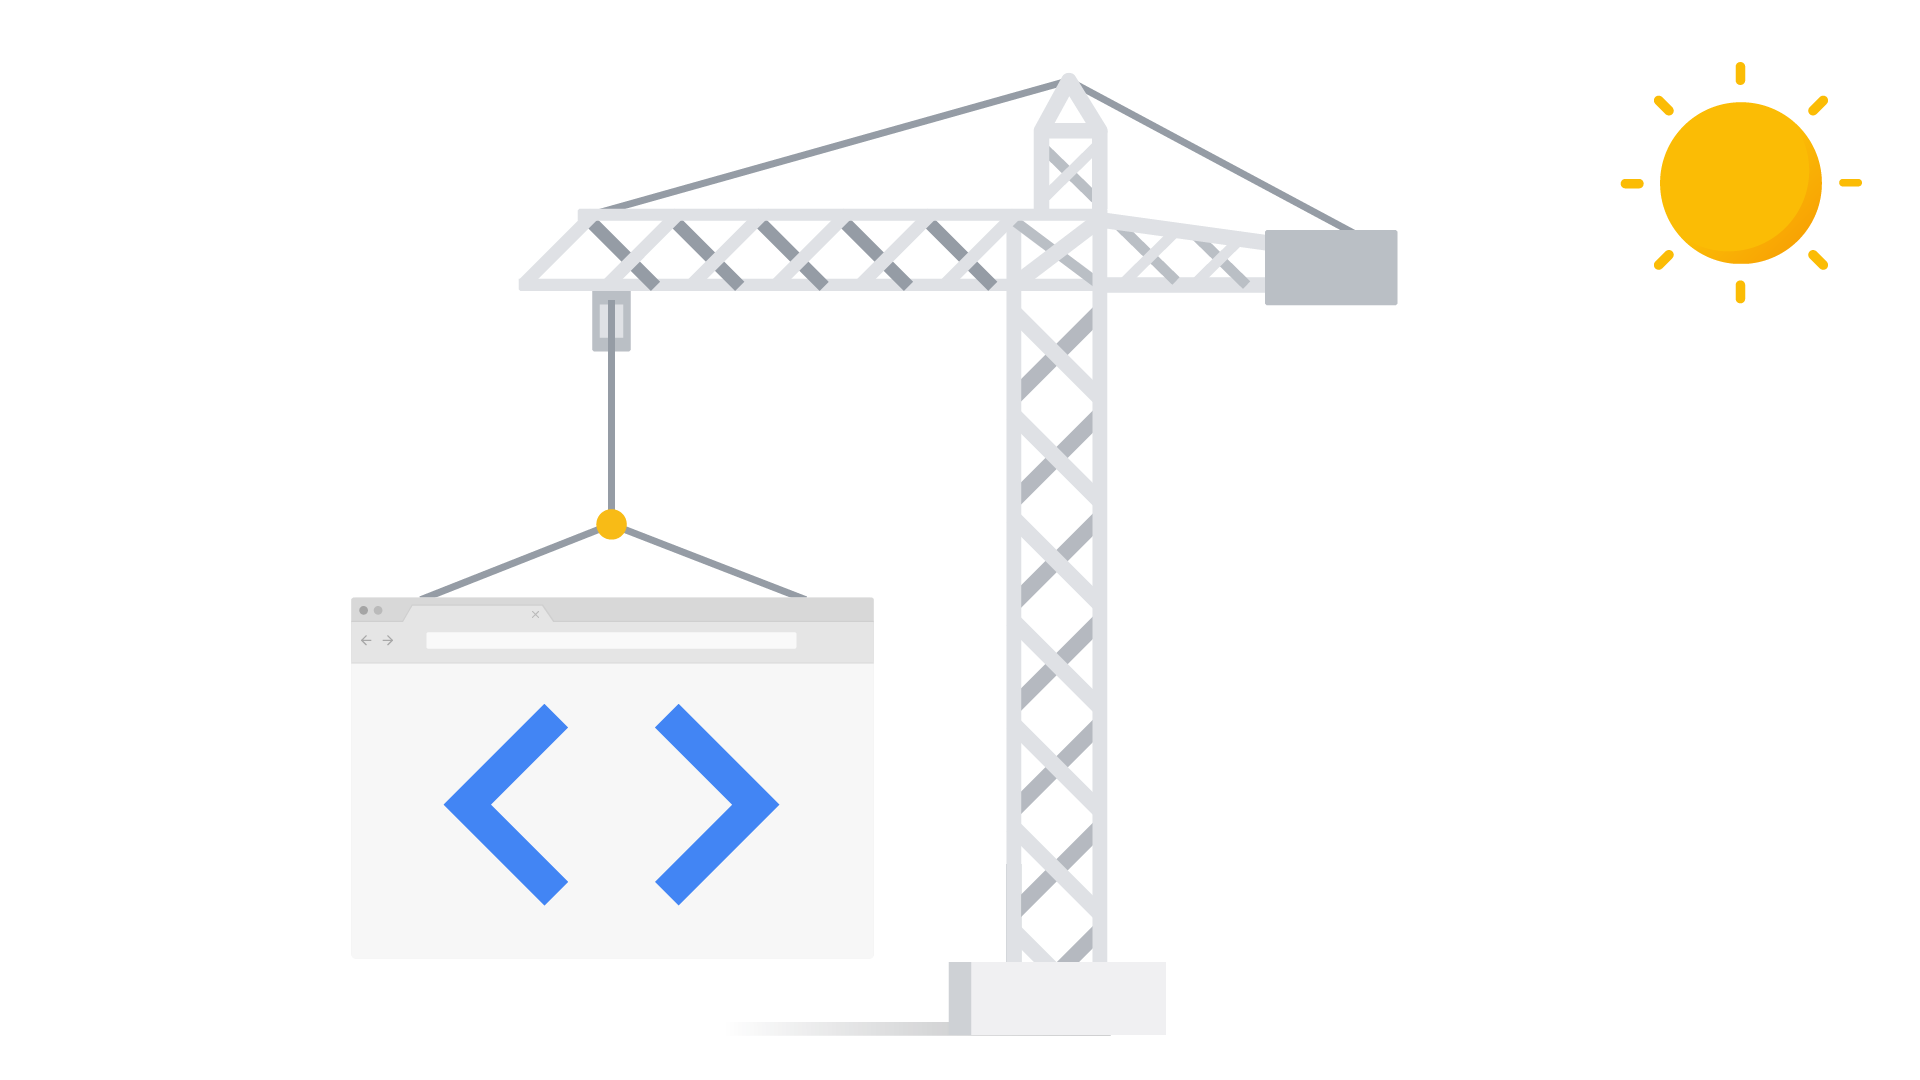 A crane is lifting up a website, showing how you can debug something